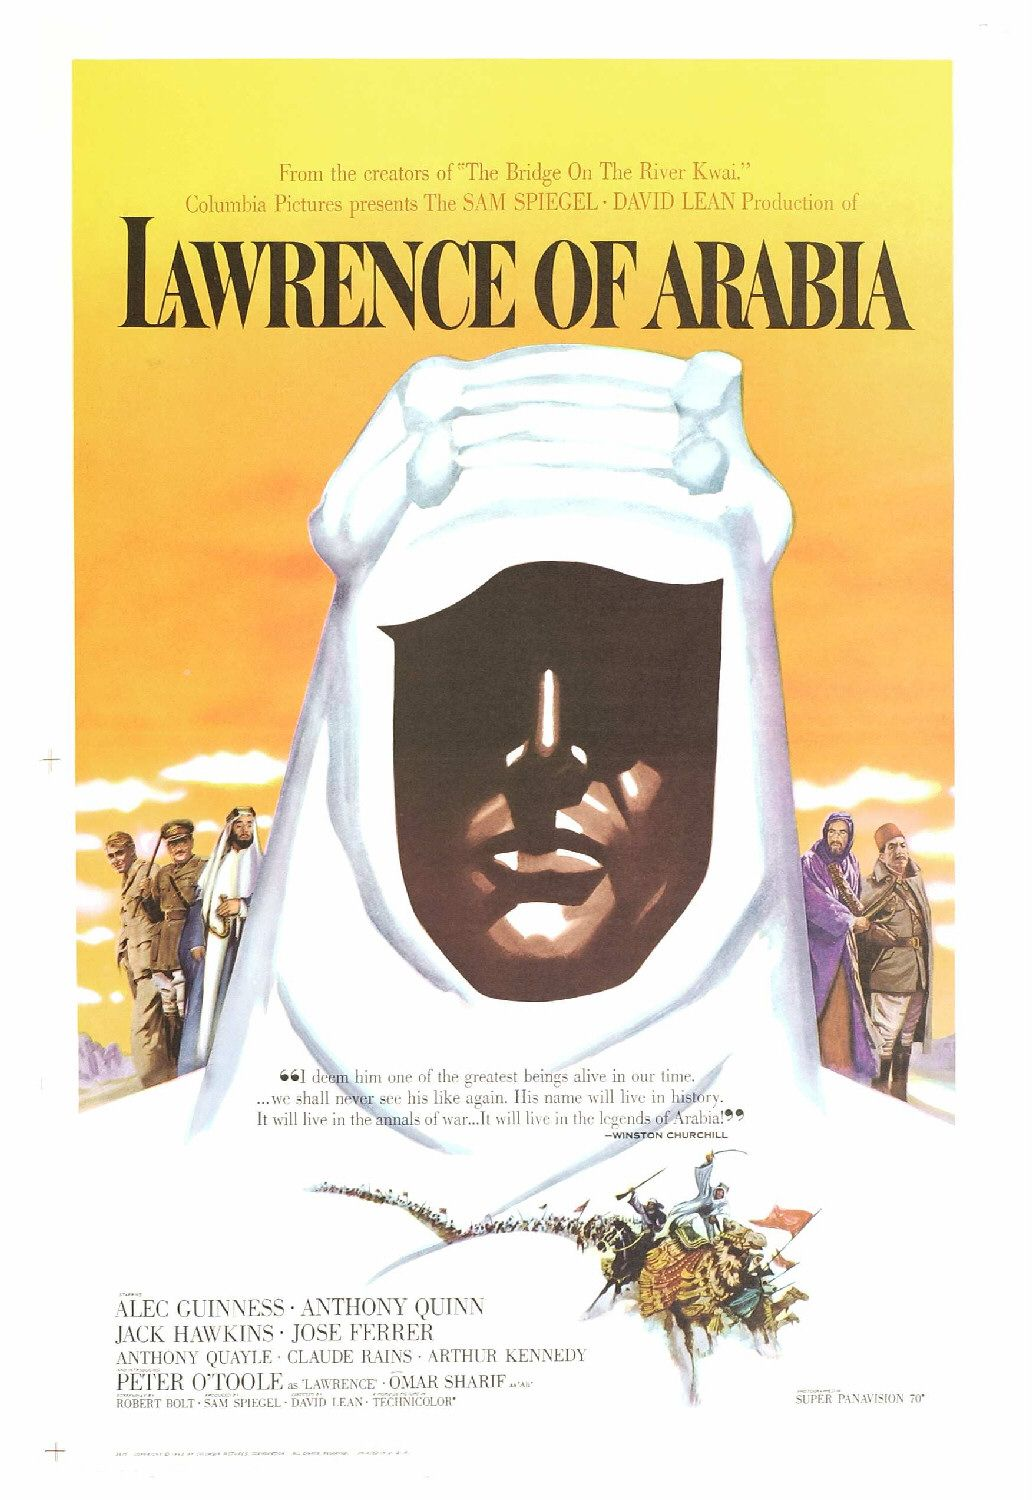 a movie review of lawrence of arabia Because lawrence of arabia begins with the fatal motorcycle accident which ended lieut col lawrence's life in 1935, the film is essentially one huge flashback that begins after jackson bentley (arthur kennedy), the fictitious stand-in for american journalist lowell thomas, is approached by a british reporter to say a few words after.